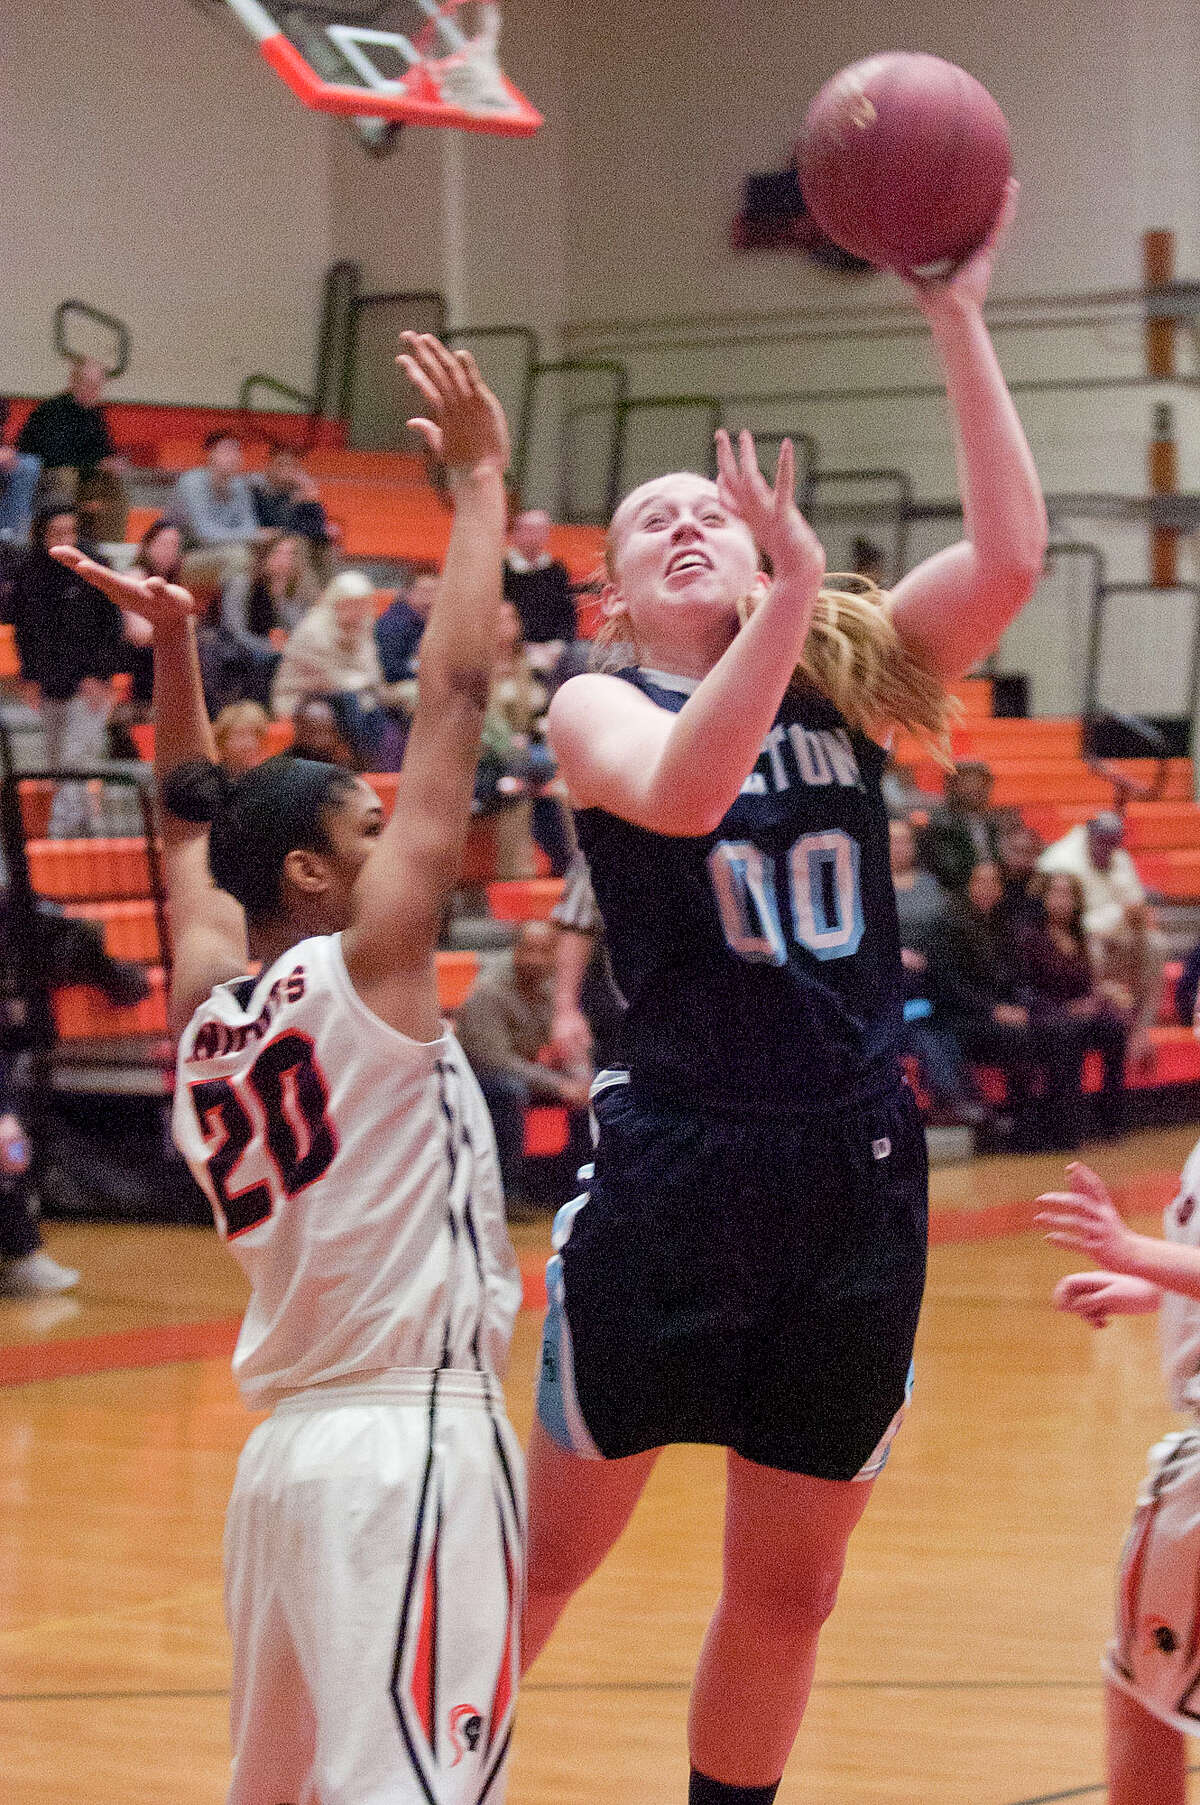 Wilton's Erica Meyer puts up a shot over Stamford's Marthe Guirand during their basketball game at Stamford High School in Stamford, Conn., on Tuesday, Jan. 20, 2015. Wilton won, 52-35.